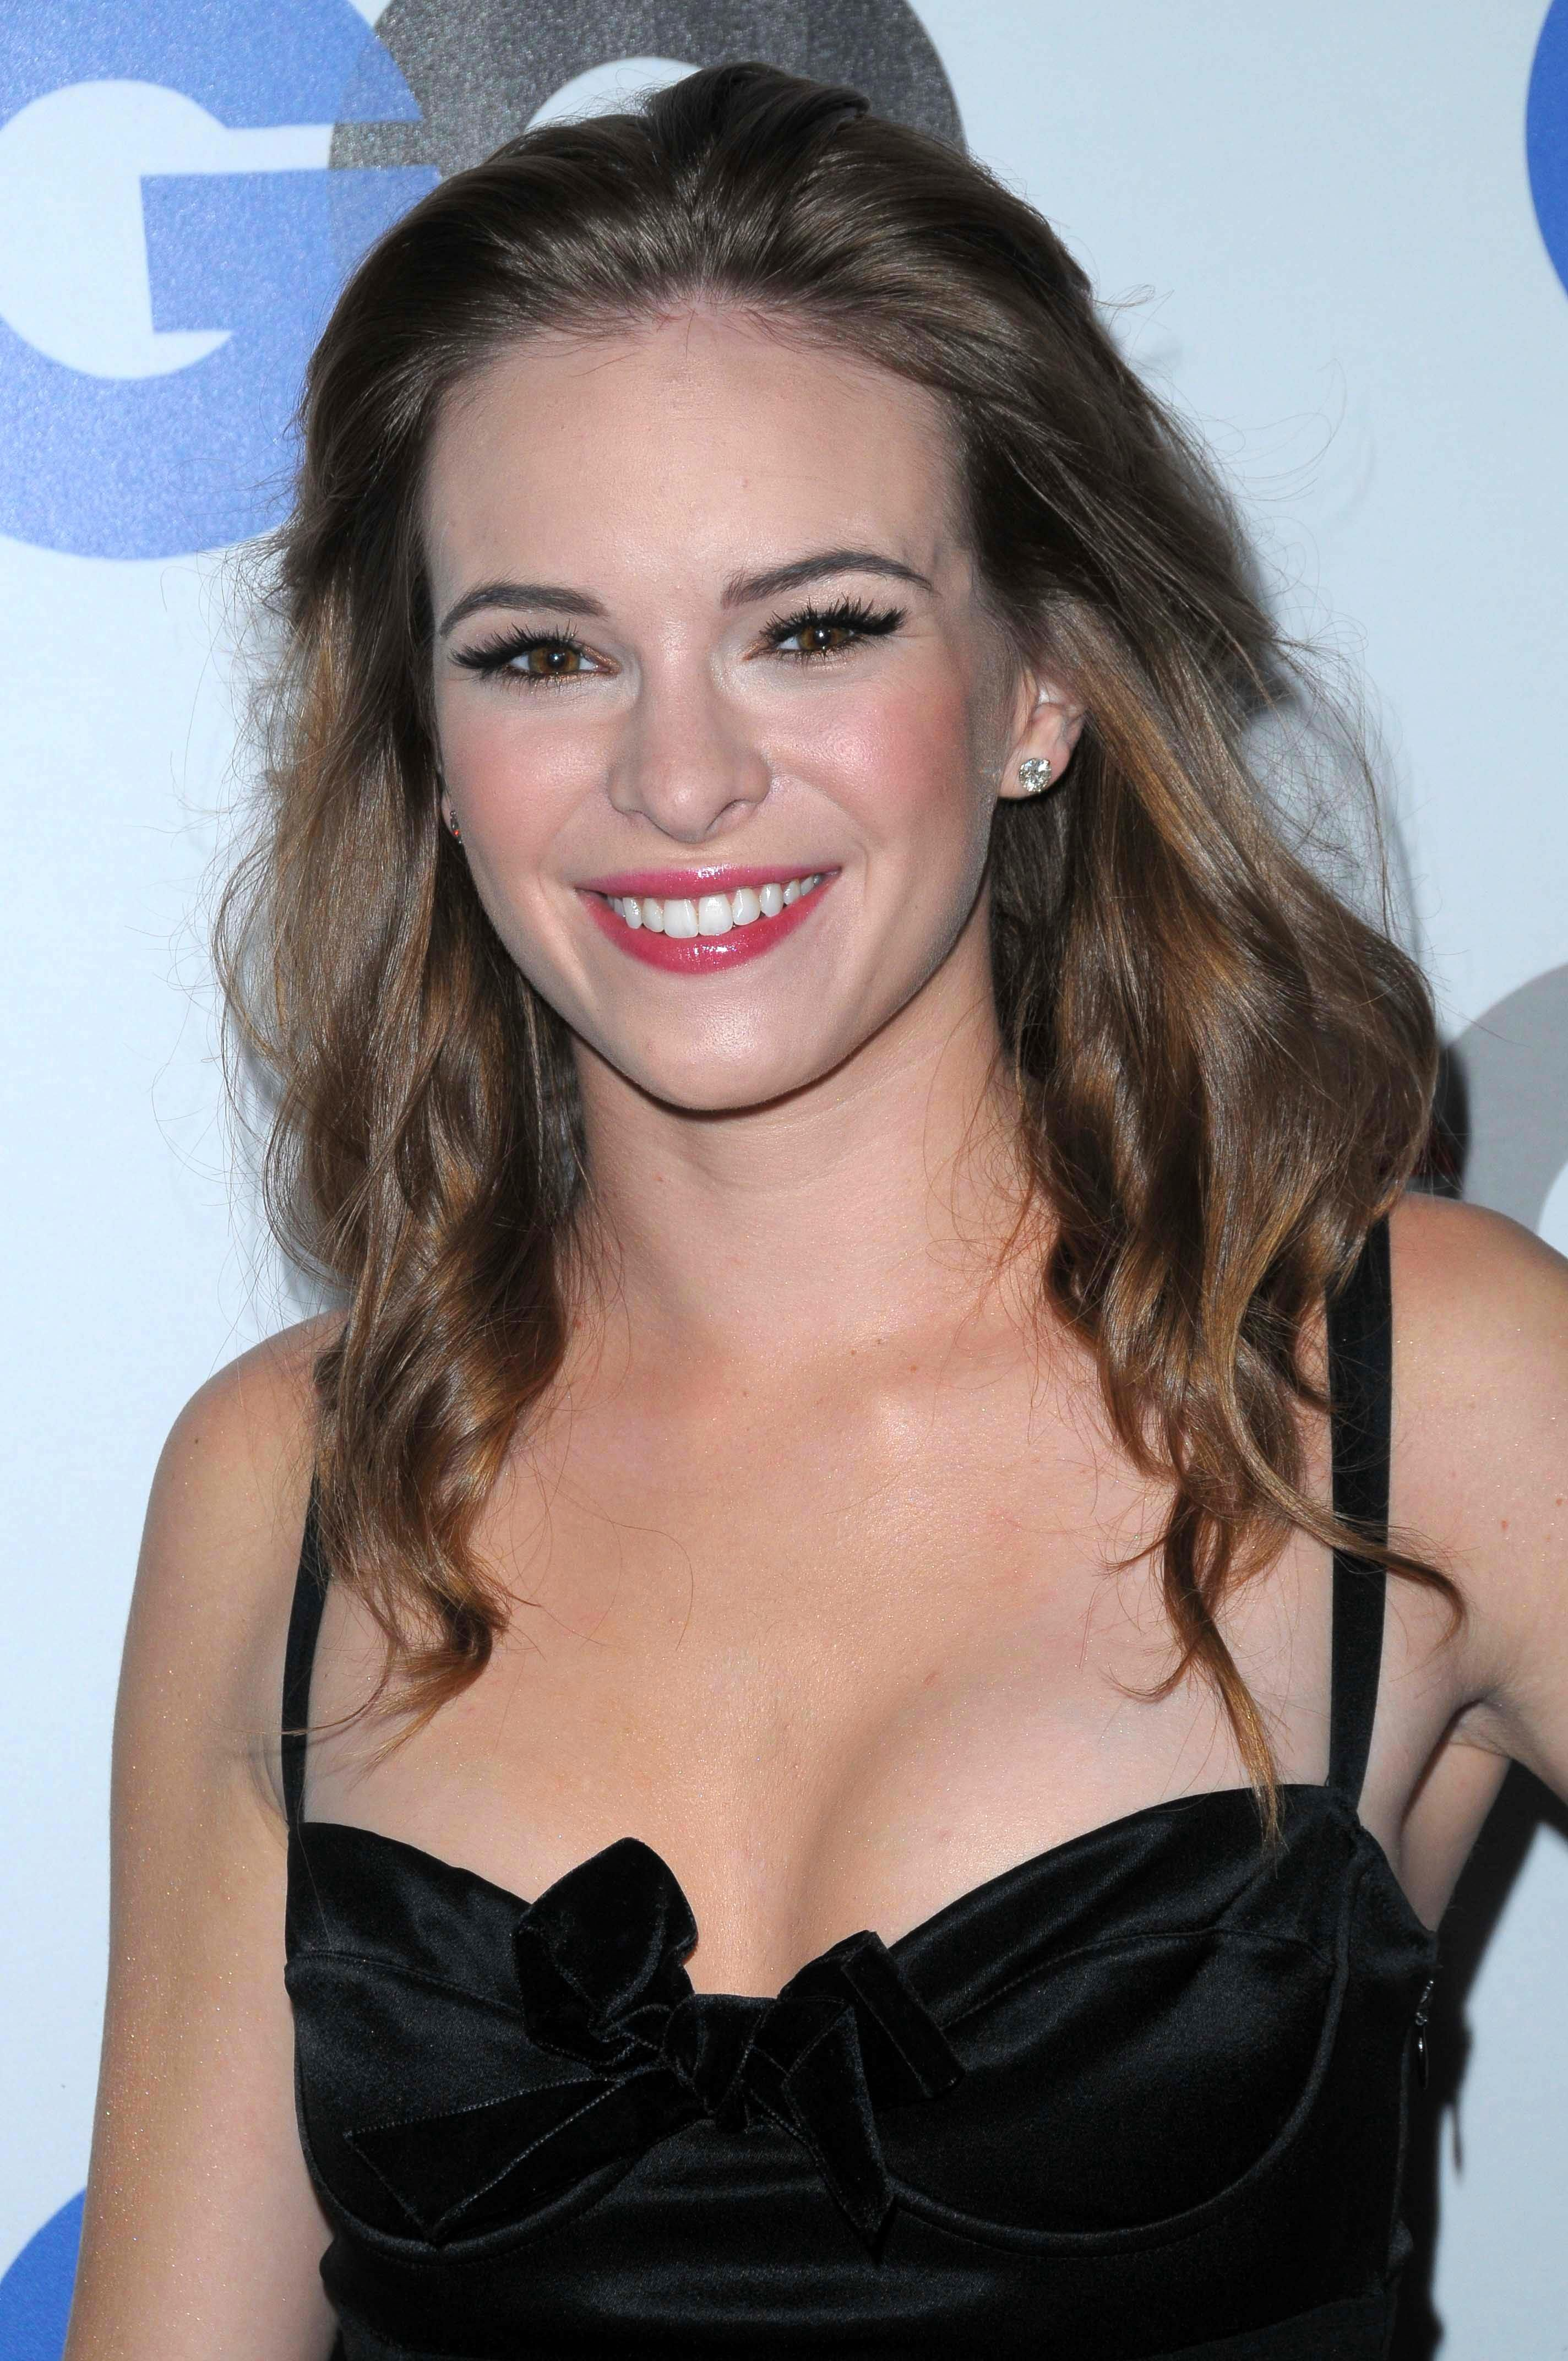 Danielle Panabaker Sexy Pictures